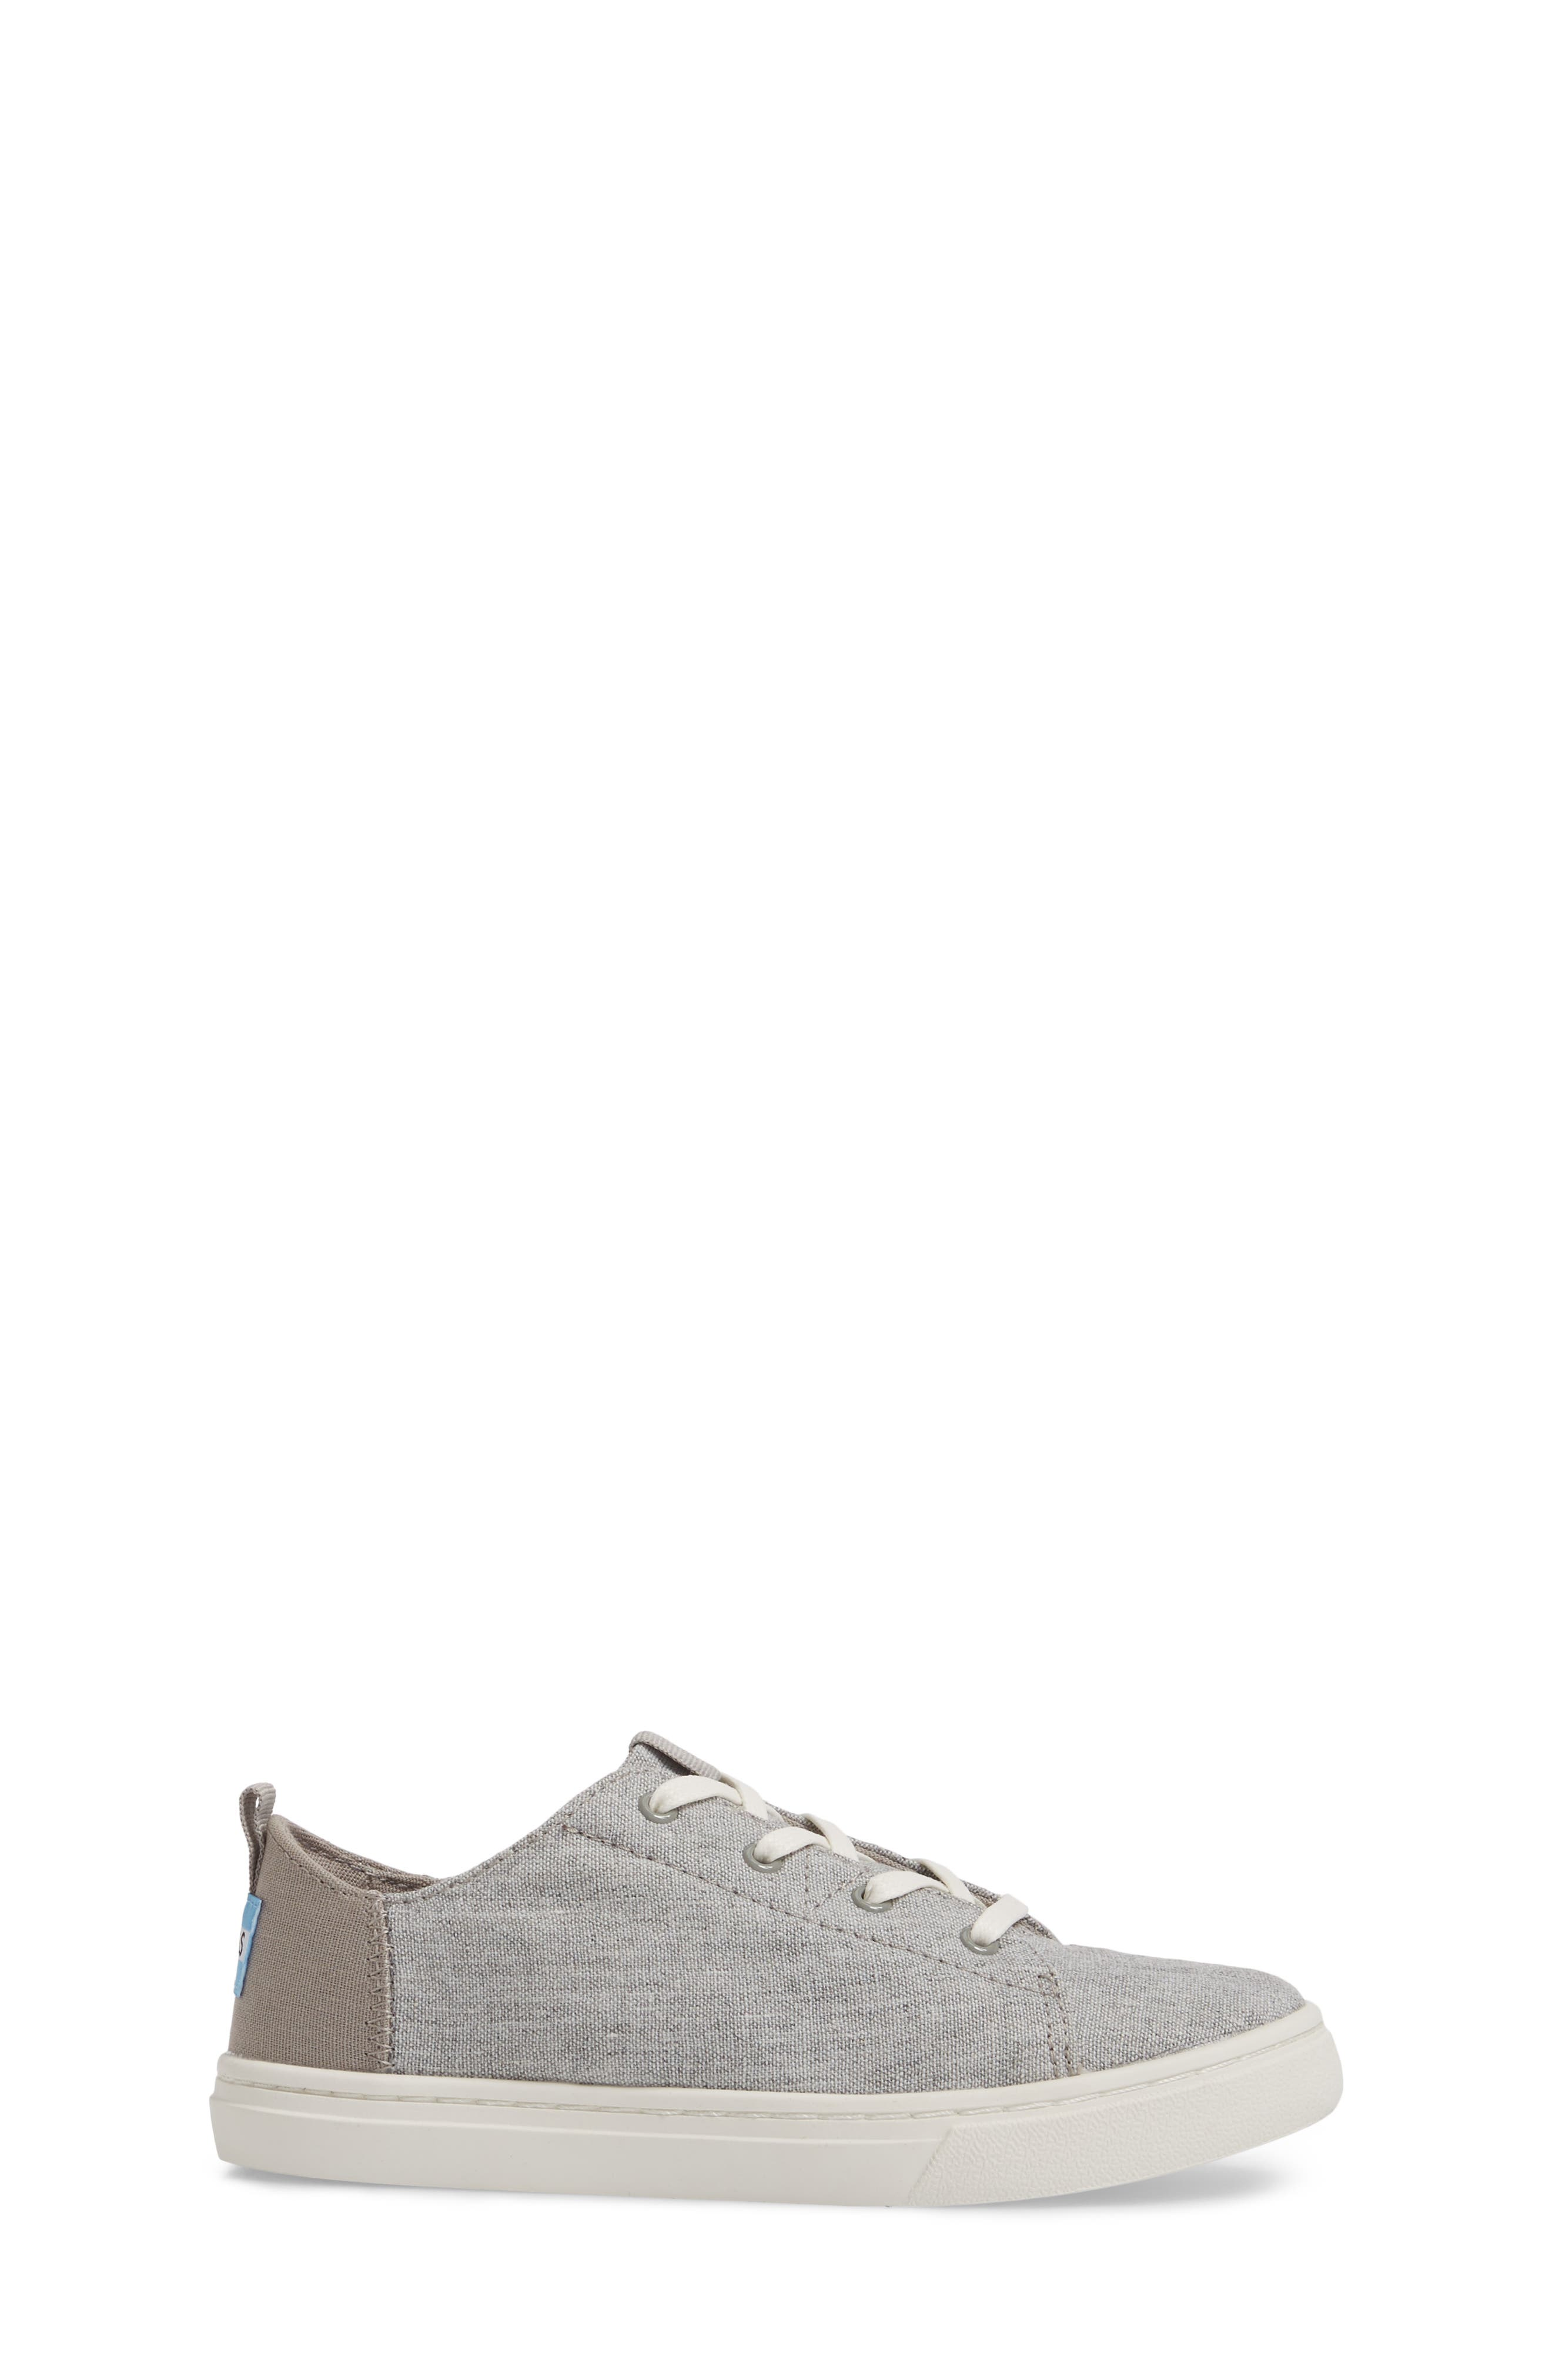 Lenny Sneaker,                             Alternate thumbnail 3, color,                             DRIZZLE GREY SLUB CHAMBRAY